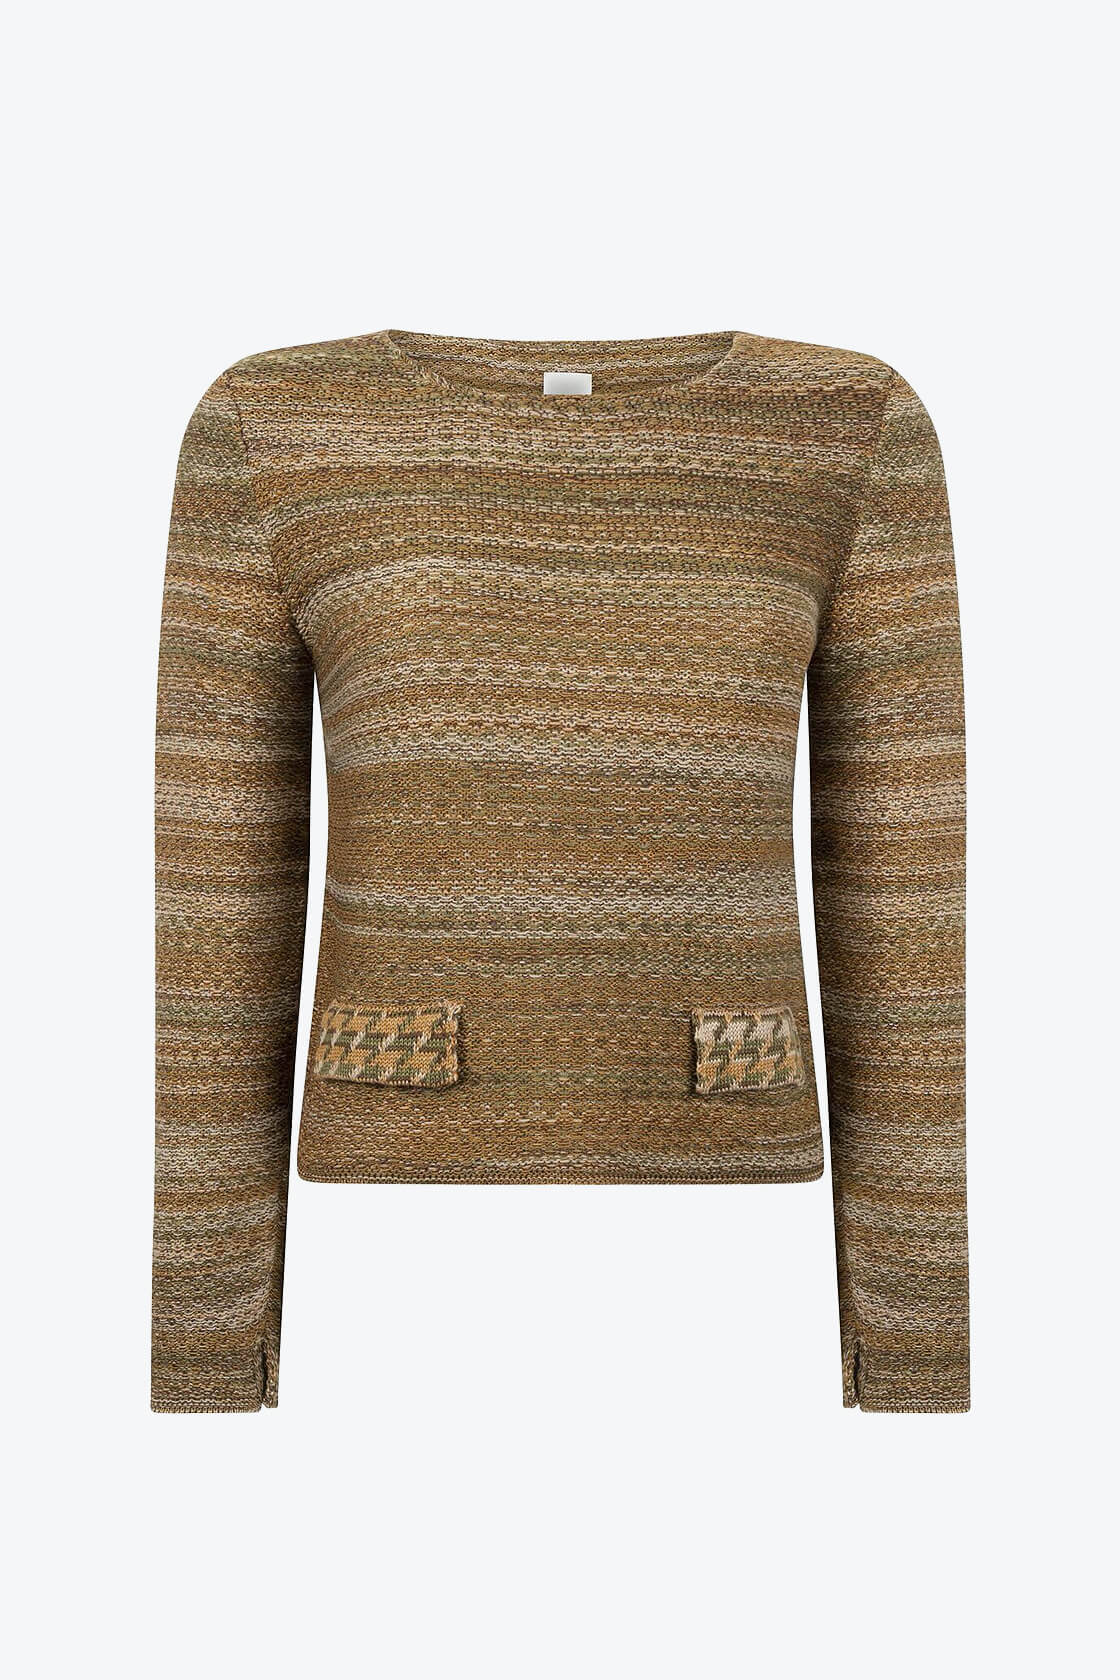 Feminine High Quality Knitted Jumper In Audrey Hepburn Style Tweed Moss